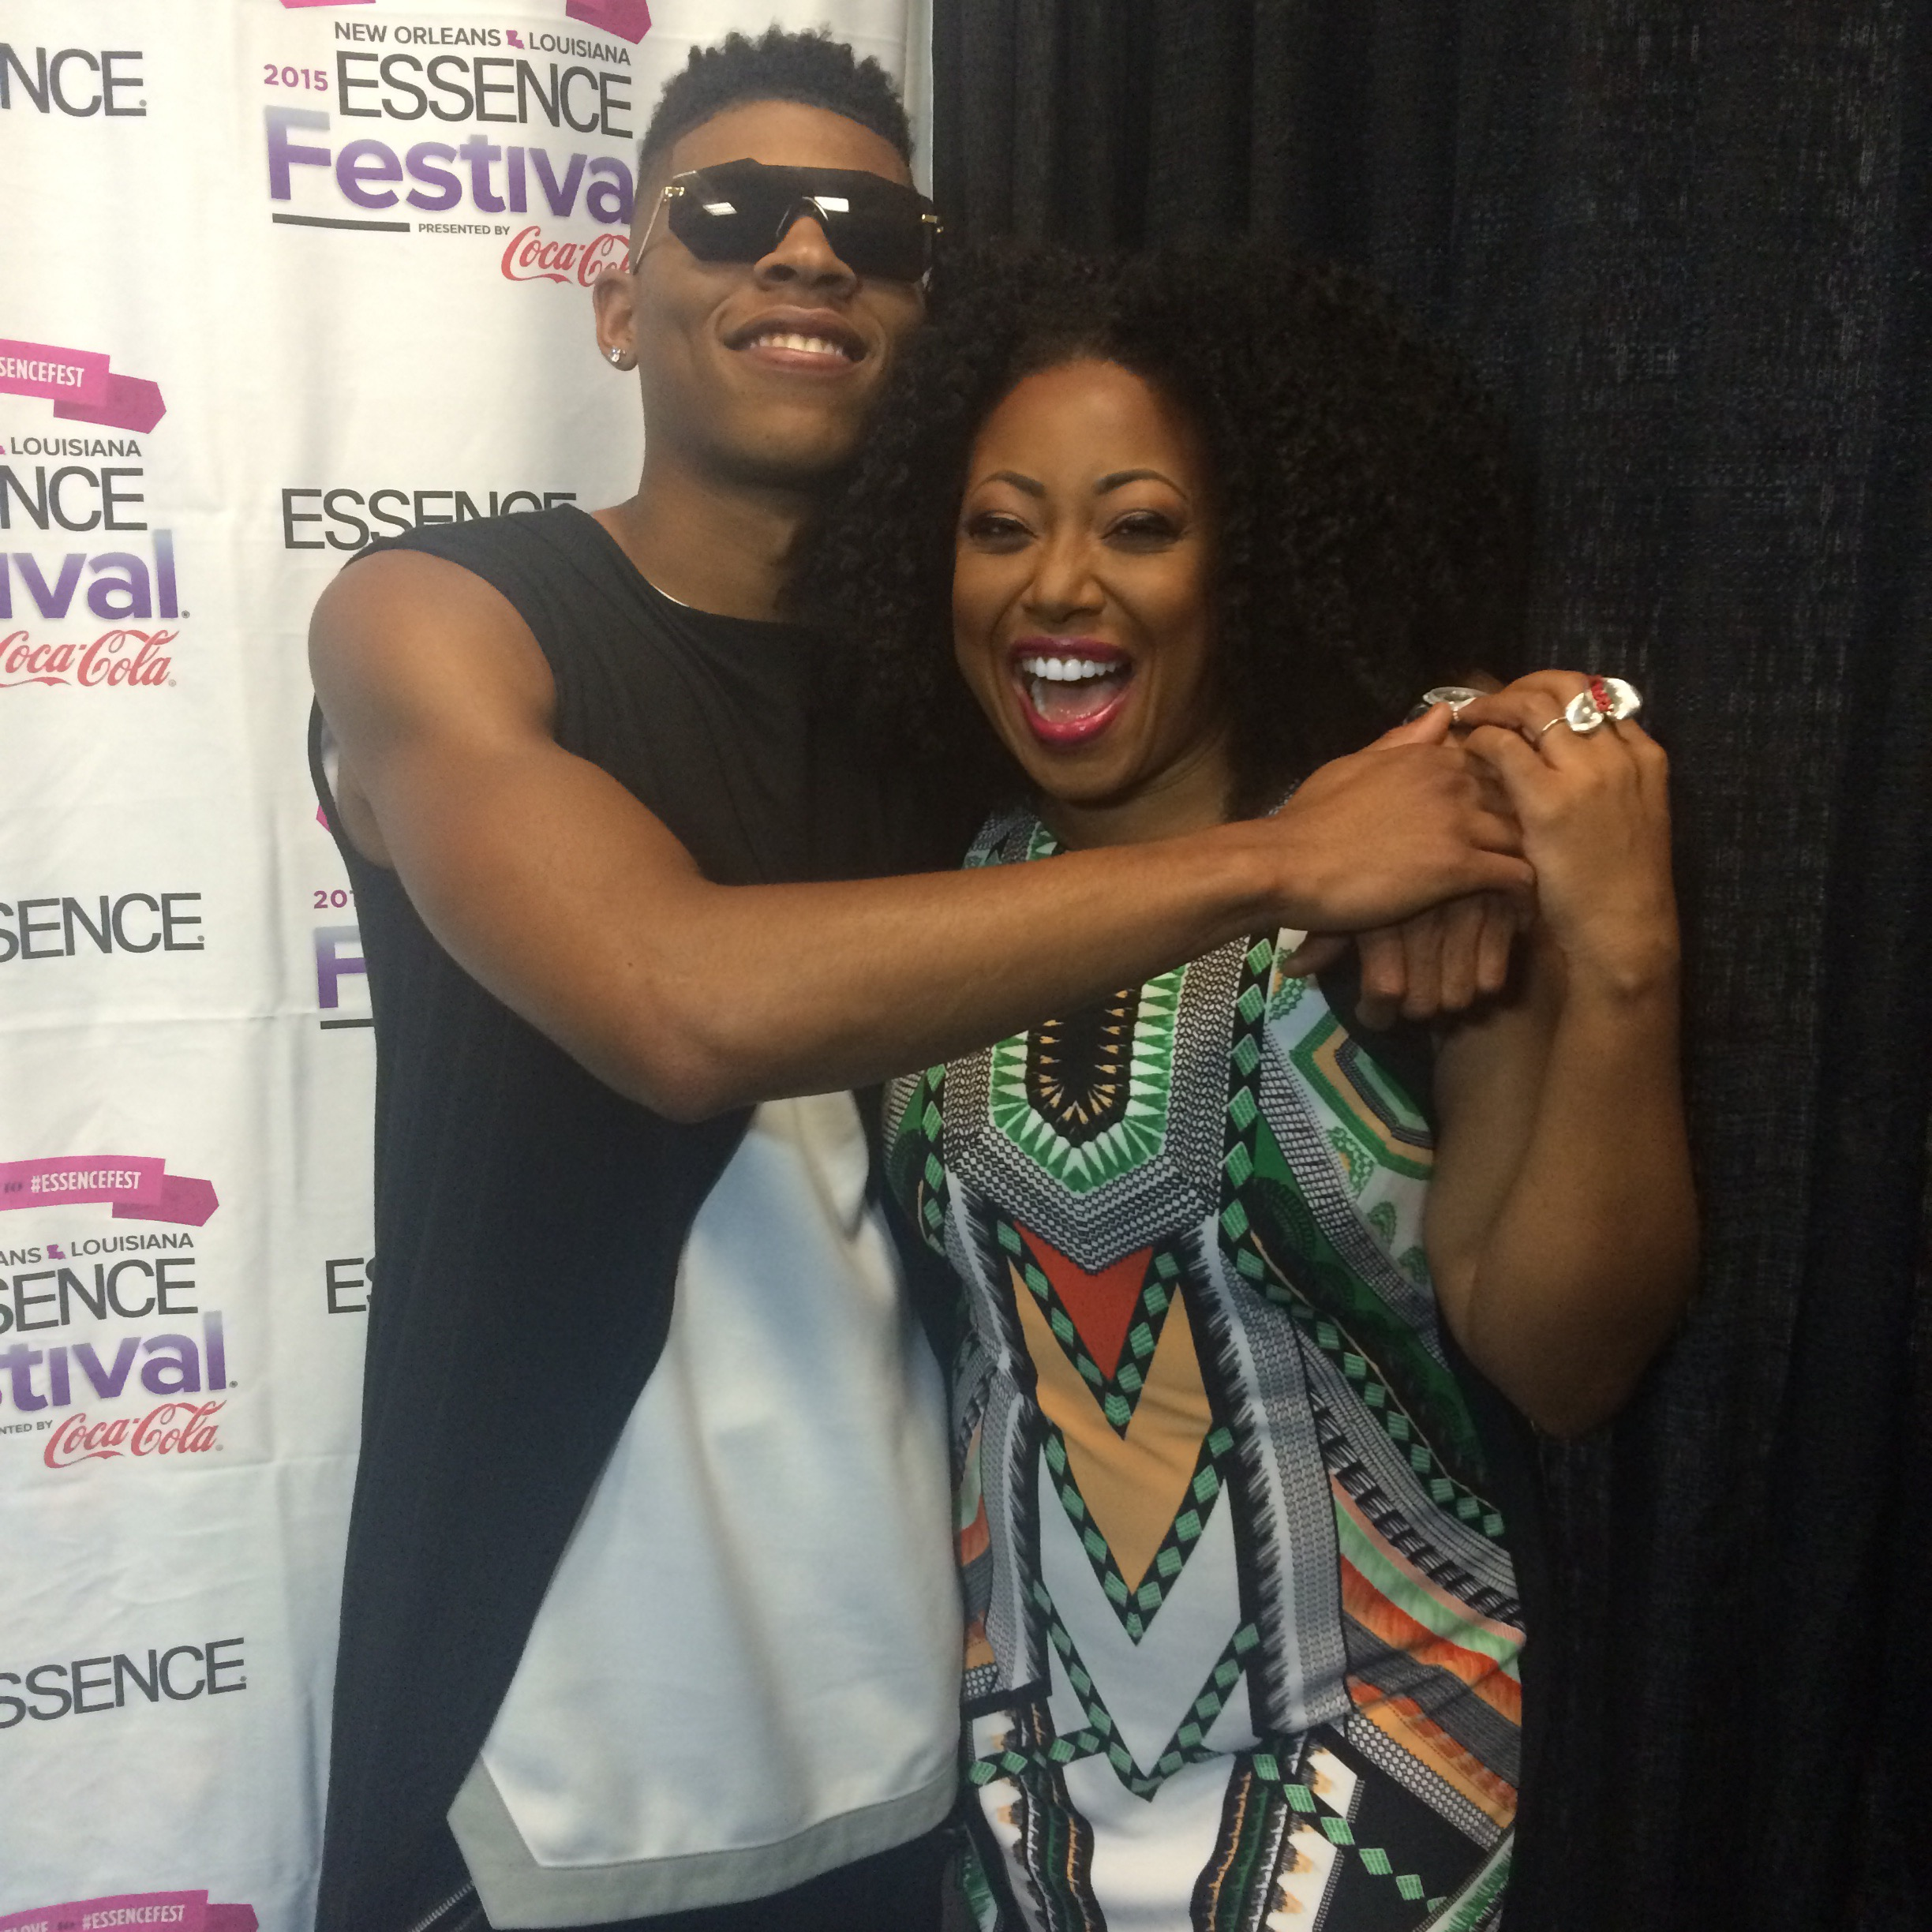 Me x Yaz in the press room at Essence Fest 2015